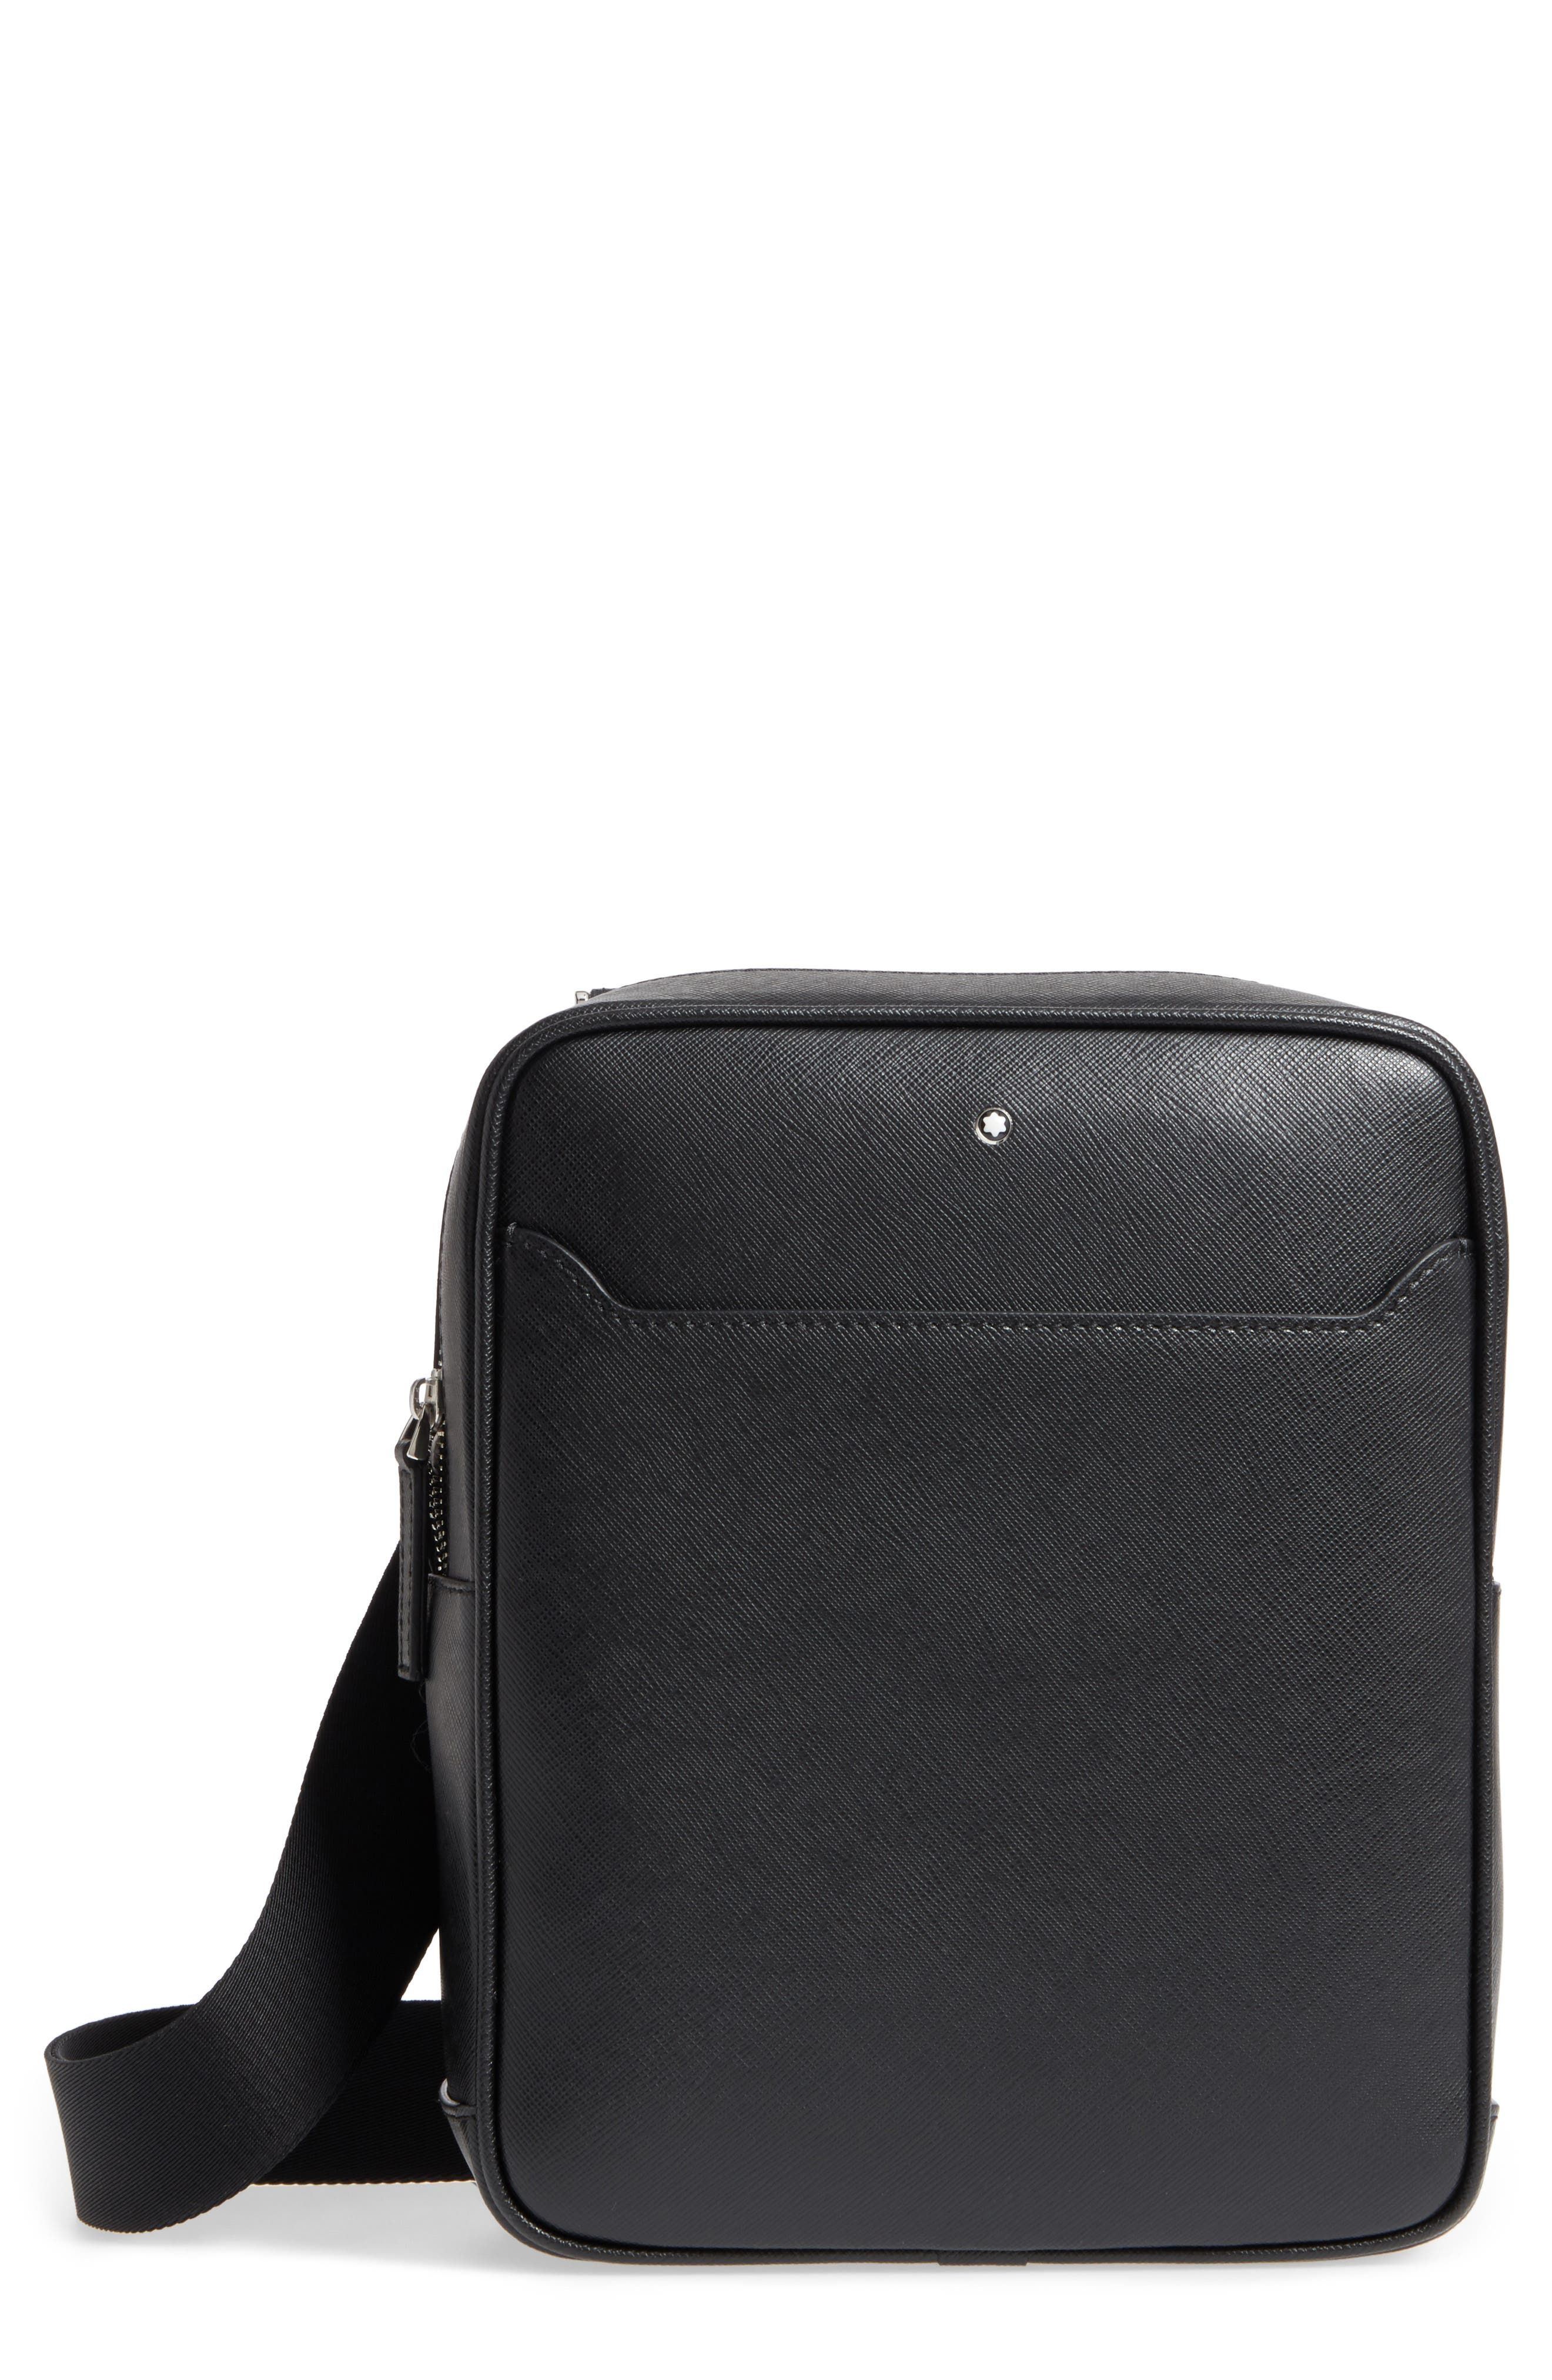 Sartorial North South Leather Bag,                             Main thumbnail 1, color,                             Black